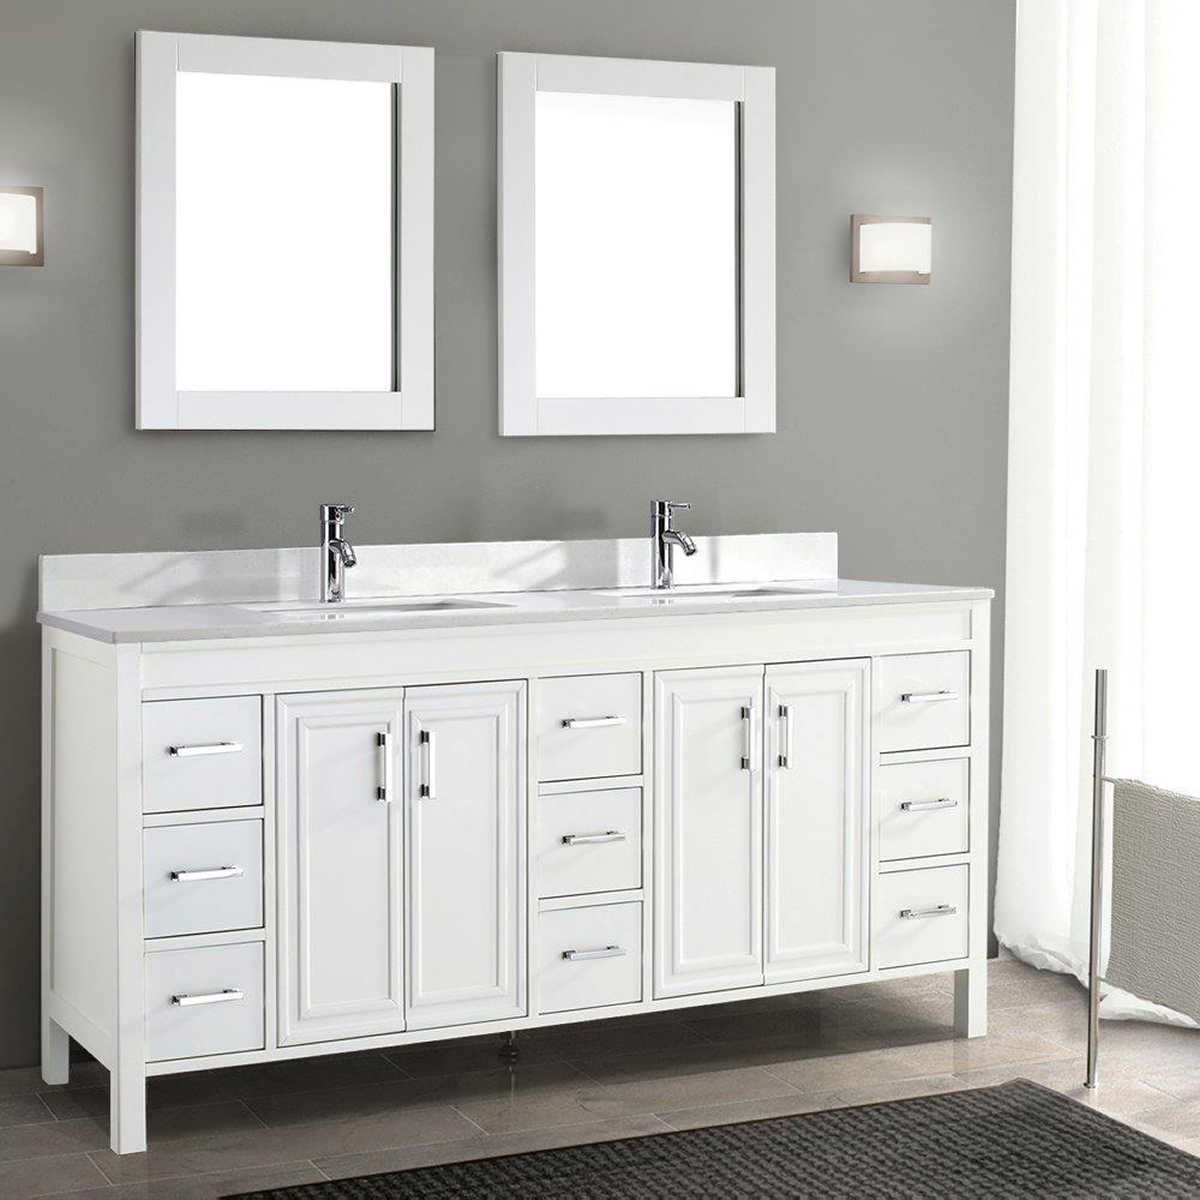 5 foot double vanity.  Corniche 75 White Double Sink Vanity By Studio Bathe